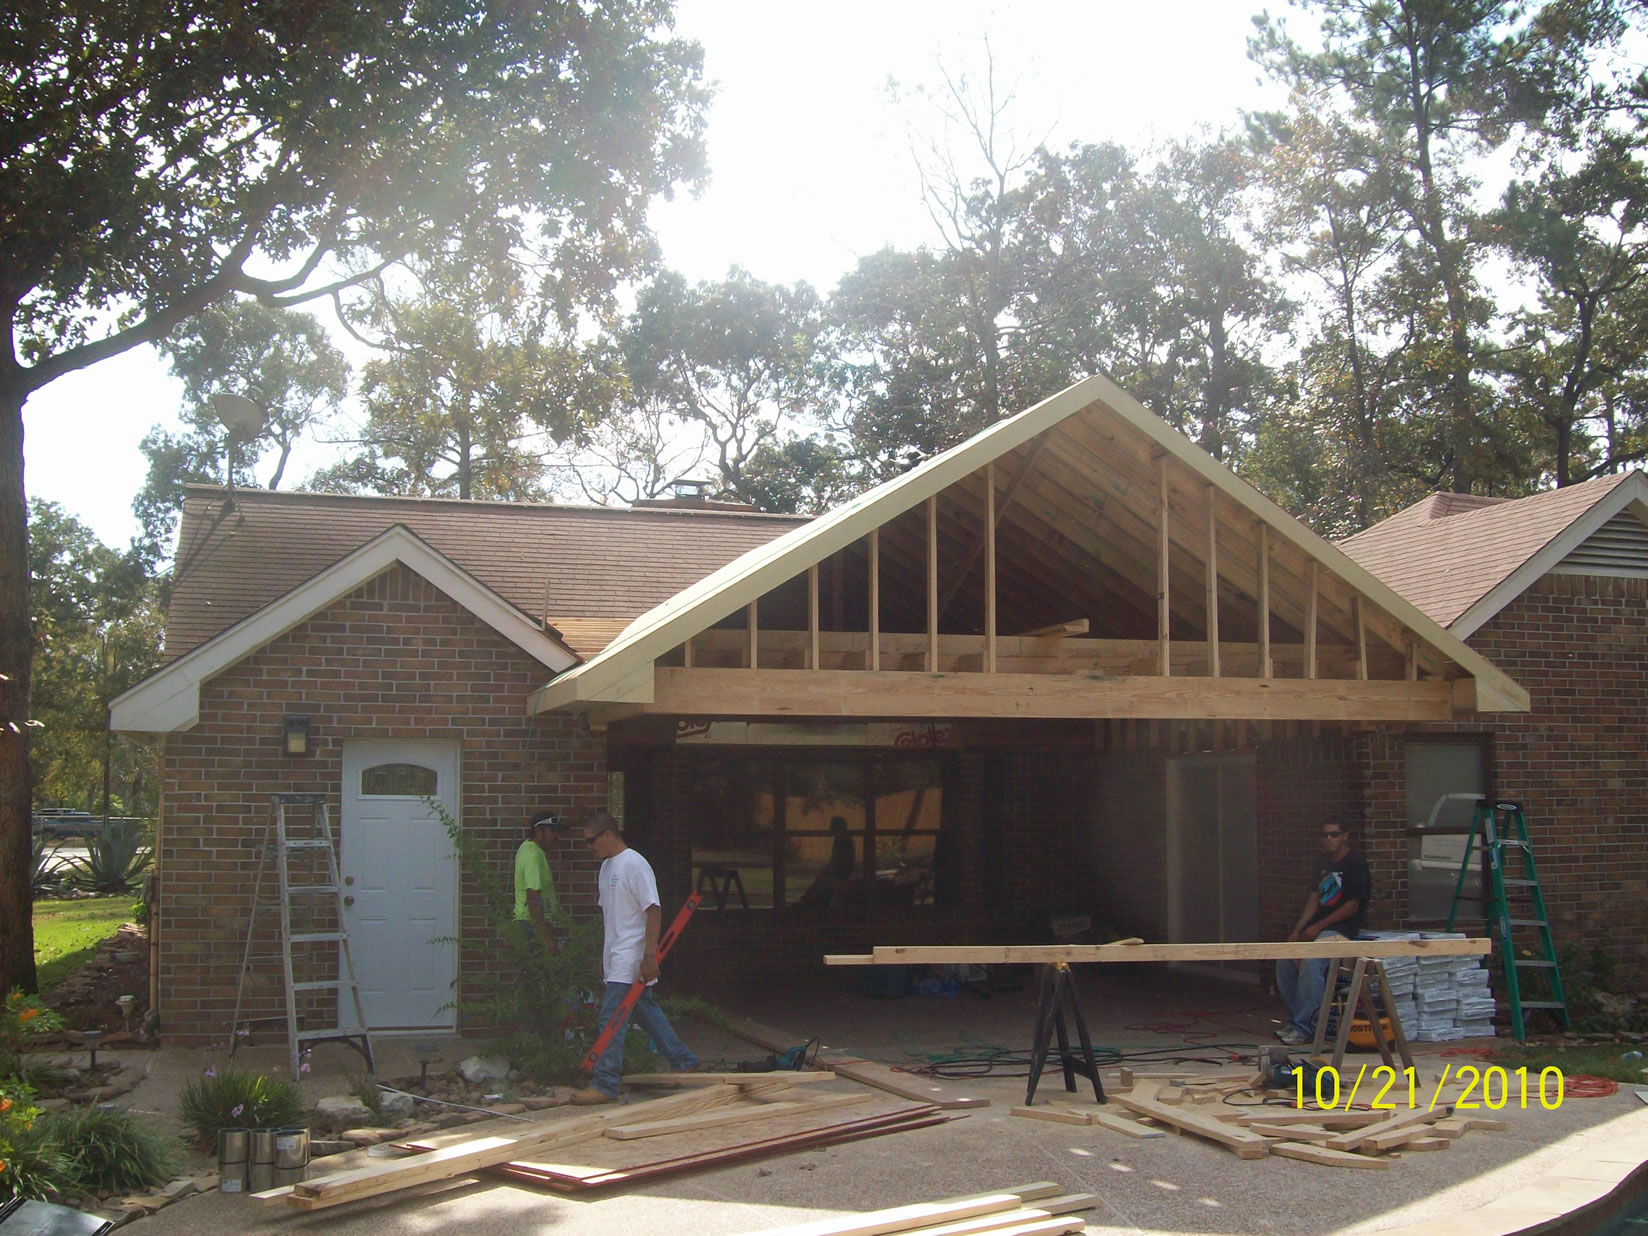 ... San Antonio, custom cabinetry, custom design and build, stucco siding